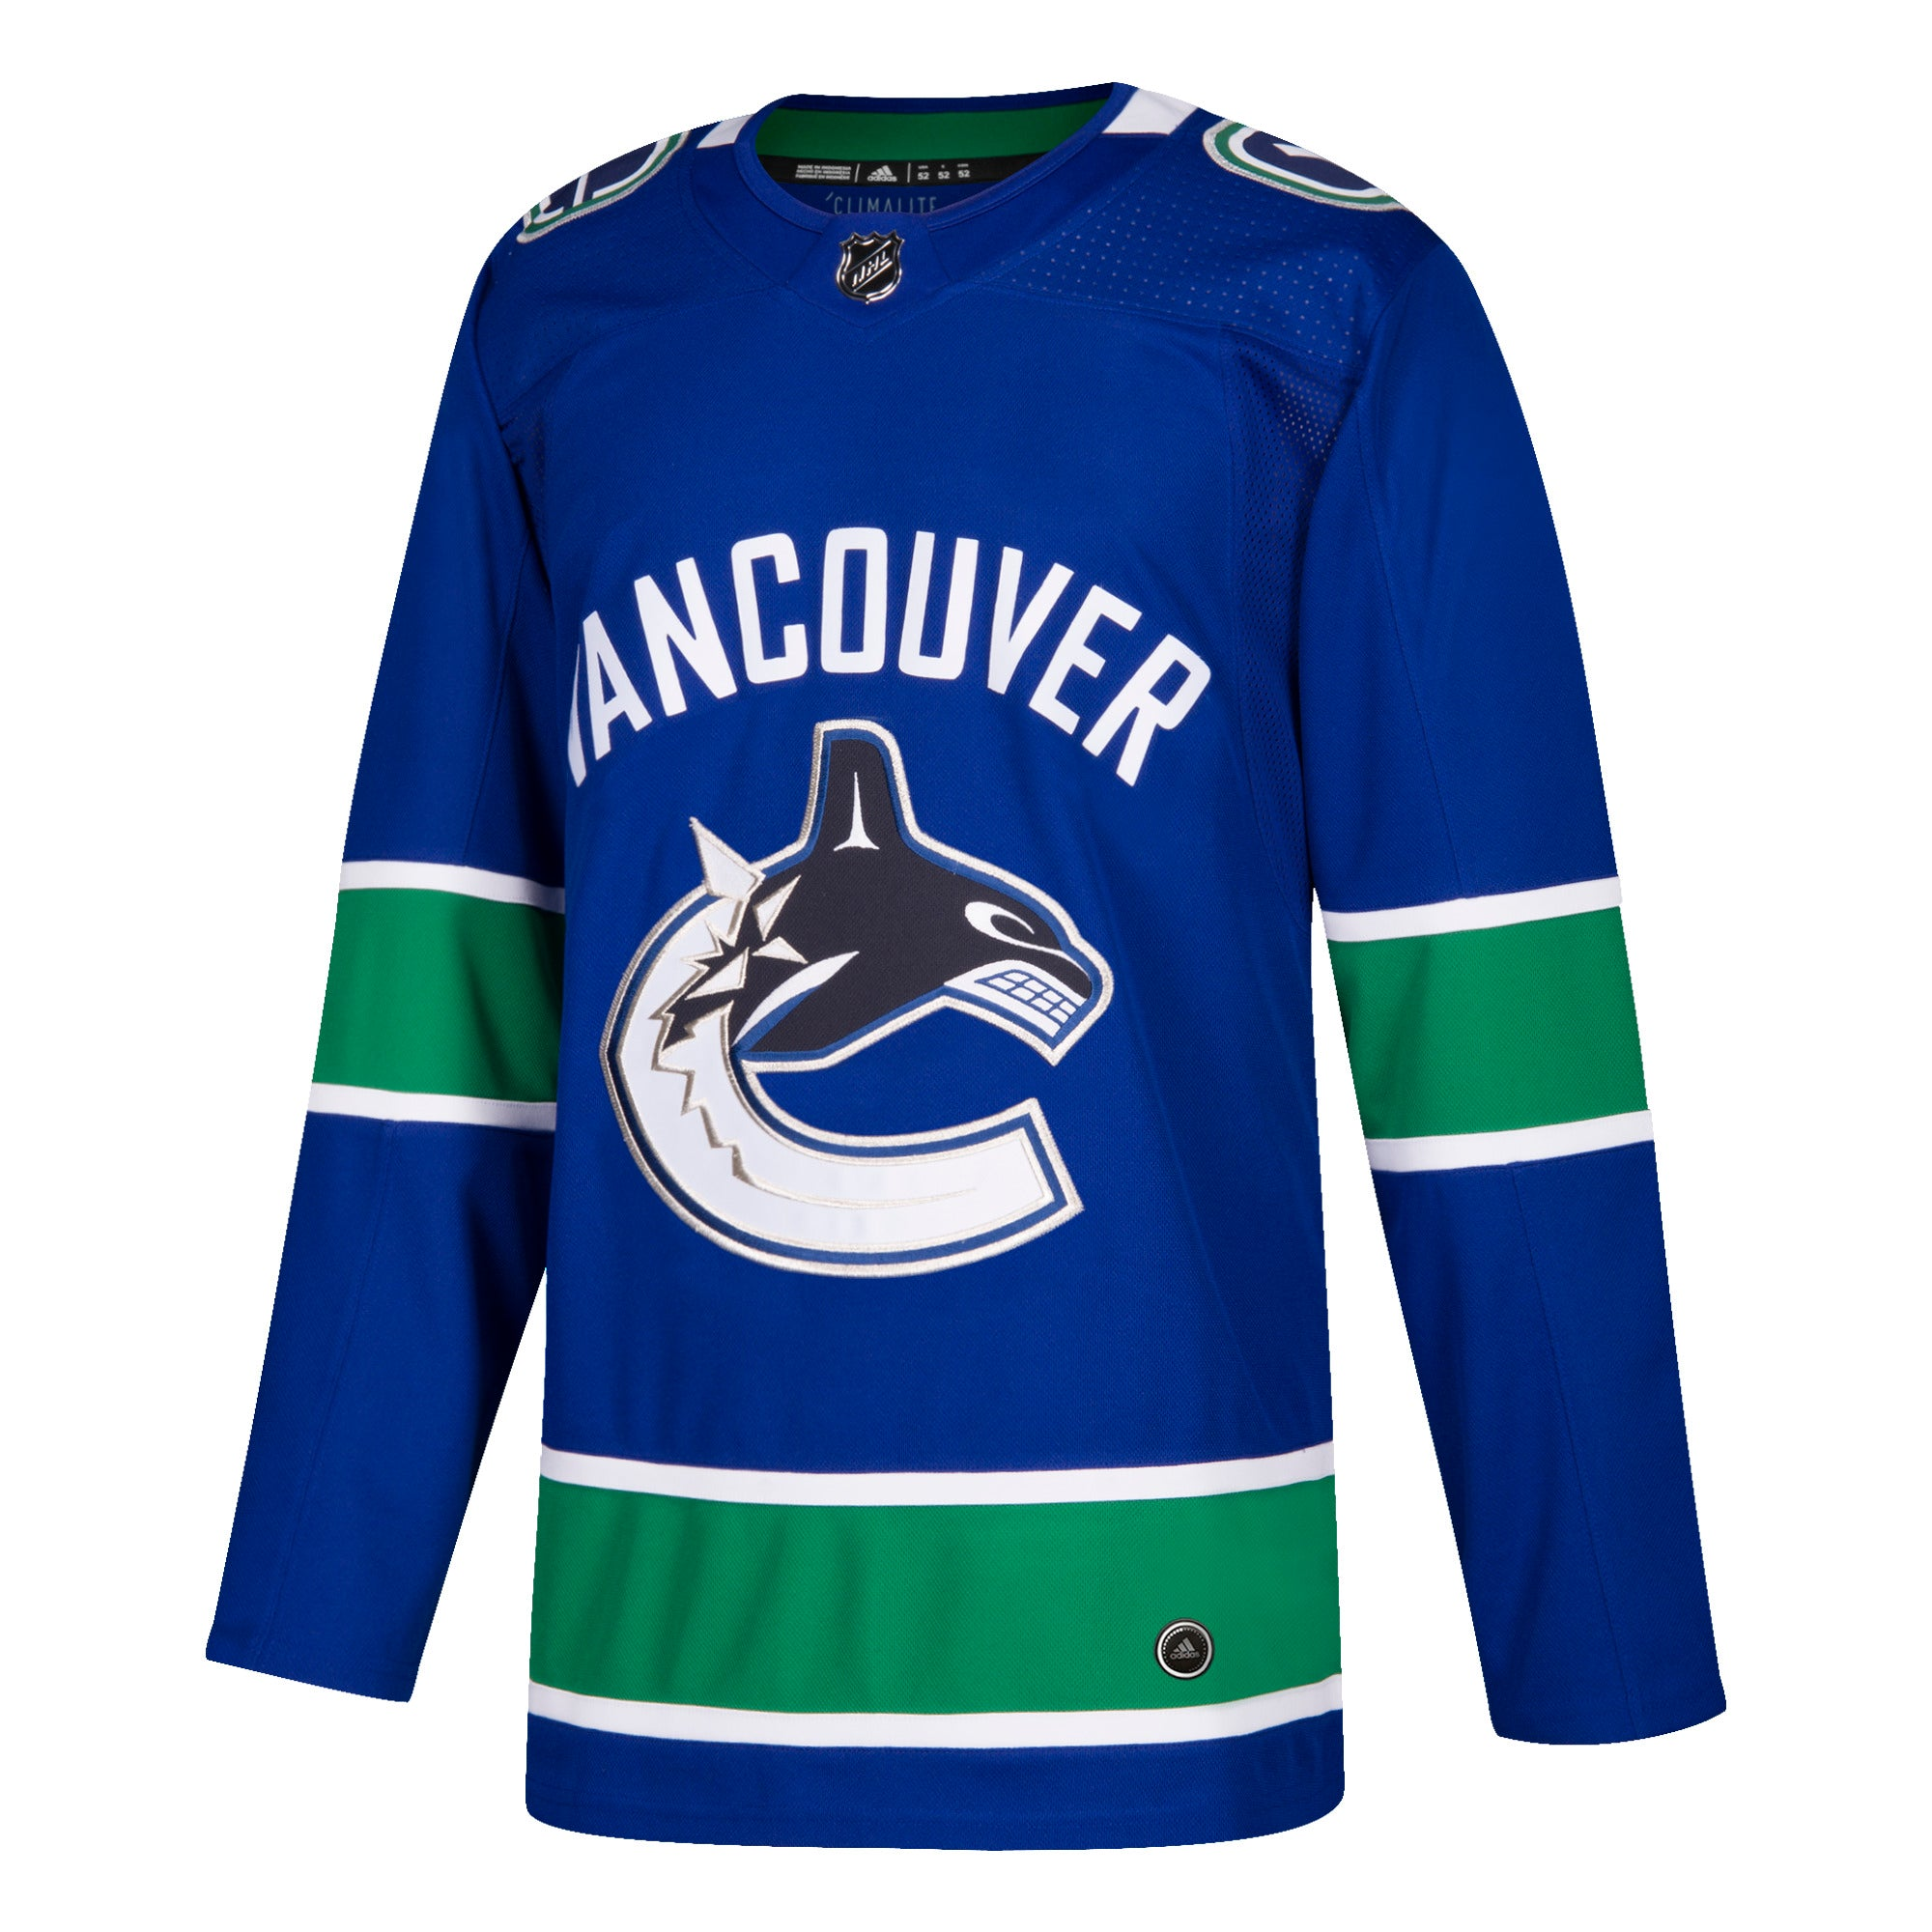 98a5082c803 Vancouver Canucks HOME 252J Adidas NHL Authentic Pro Jersey - Hockey ...